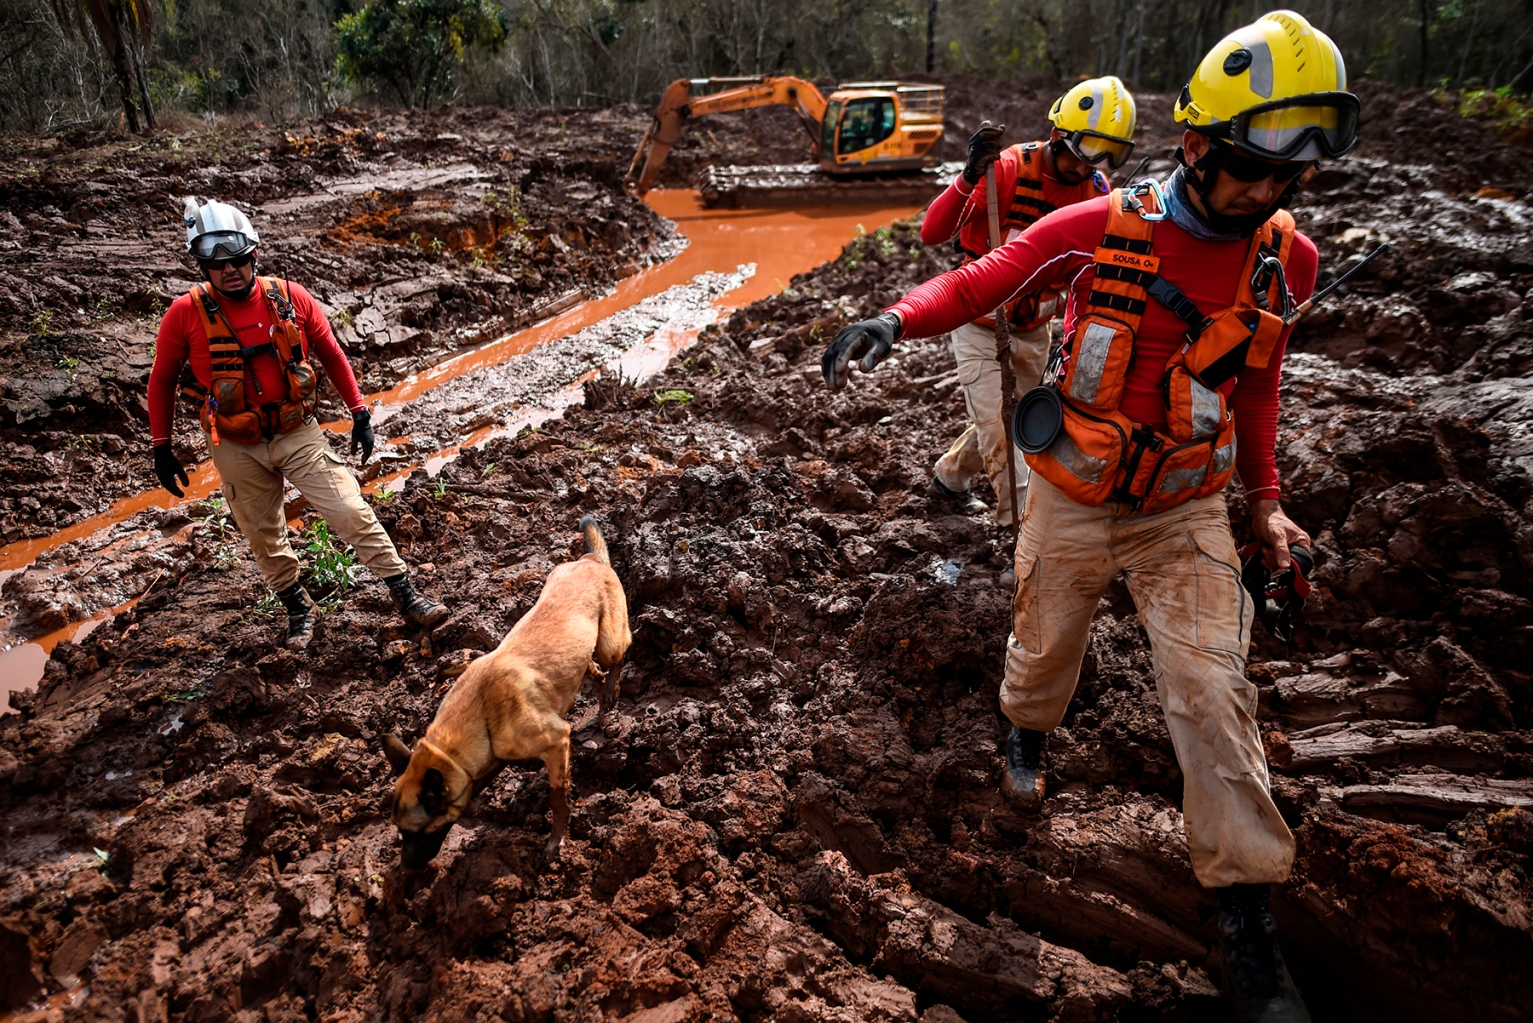 A dog locates bodies as emergency crews continue the slow process of picking through mud looking for bodies, 99 days after the collapse of the Corrego do Feijao dam of mining company Vale in Brumadinho, Minas Gerais State, Brazil, on May 3. DOUGLAS MAGNO/AFP/Getty Images